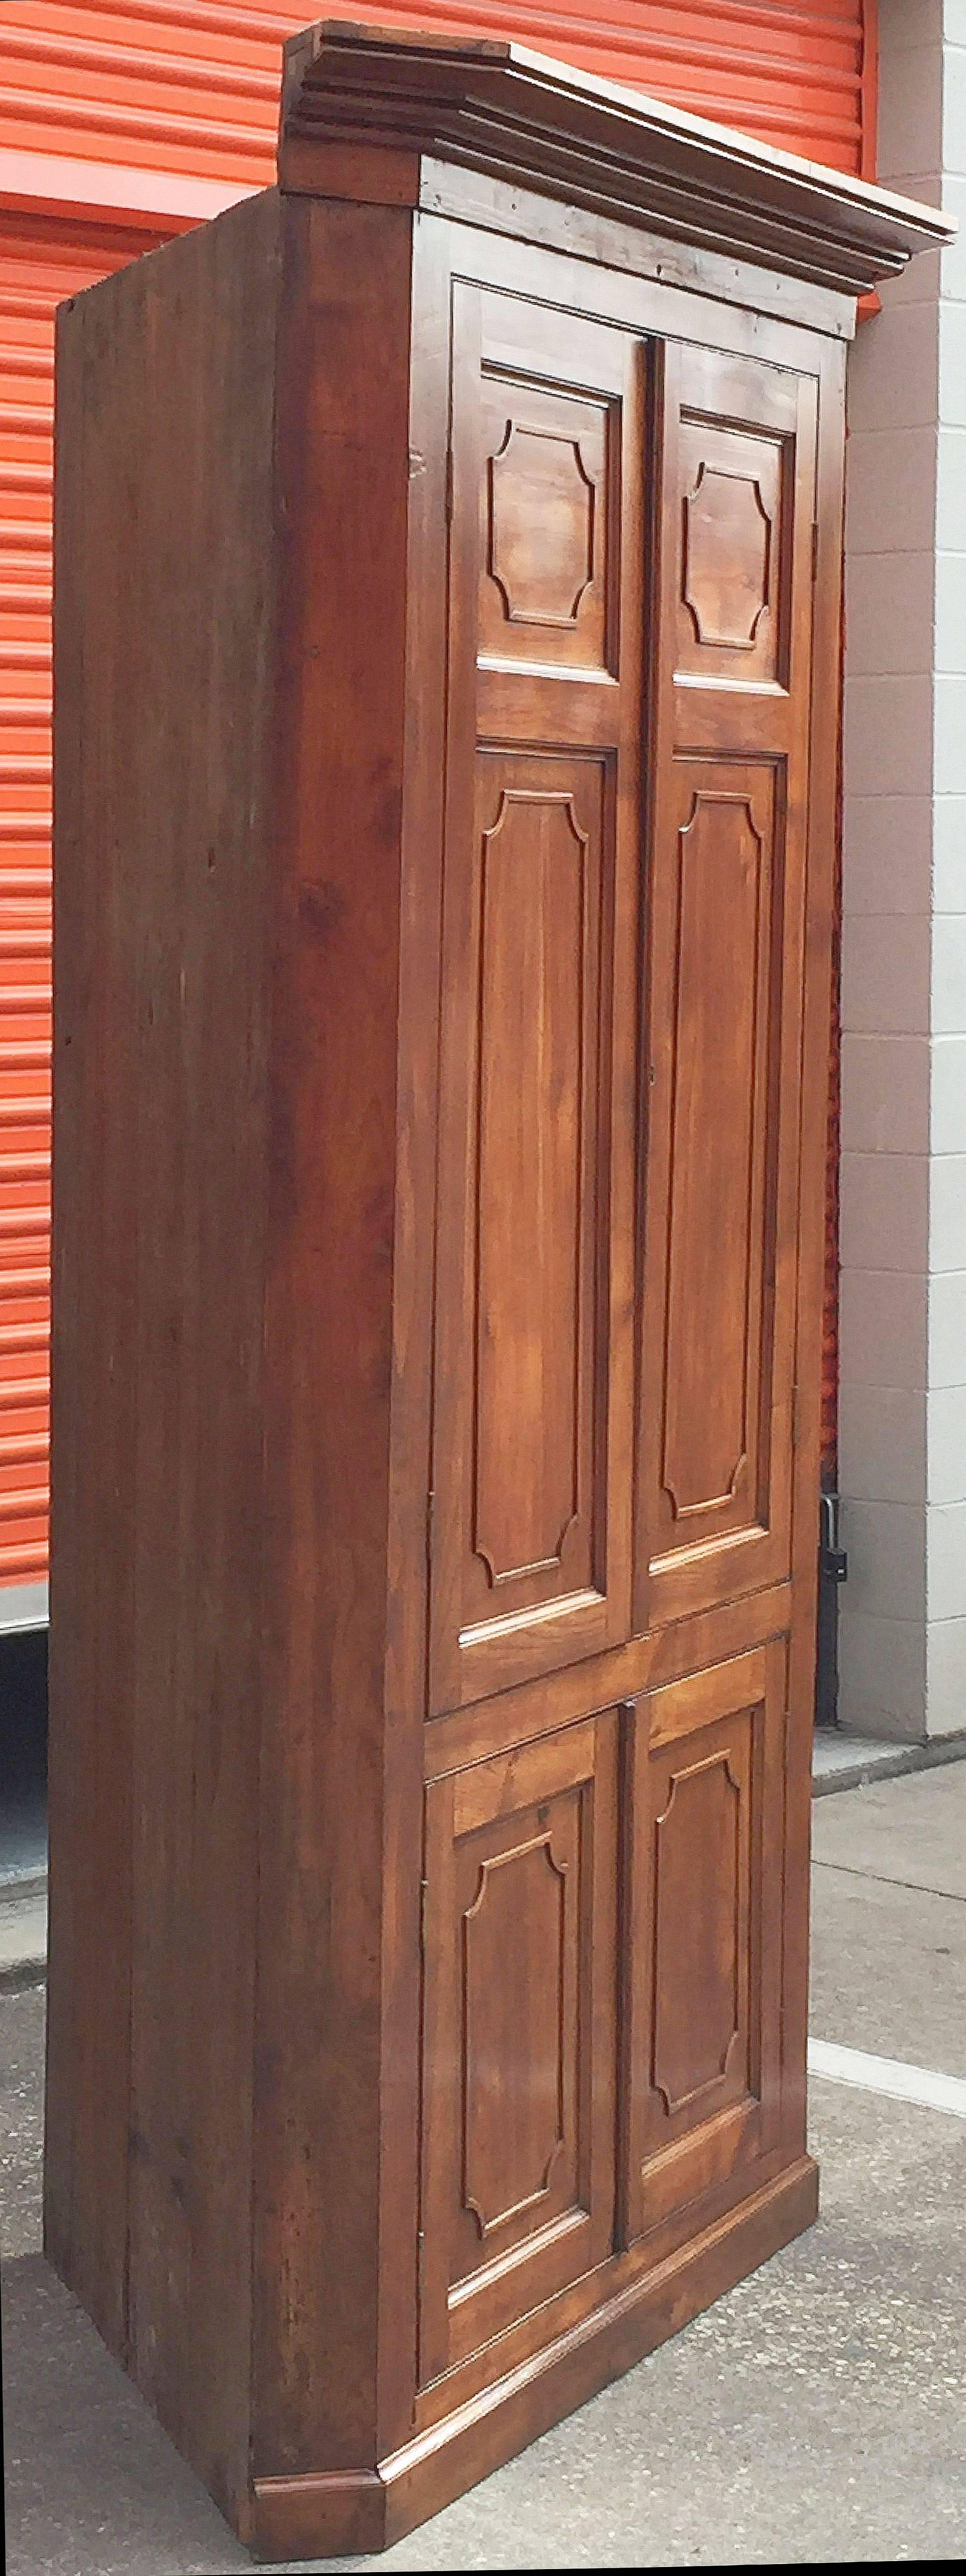 Large Two Tiered Corner Cabinet Or Cupboard Of Cherry With Paneled Doors  For Sale 1